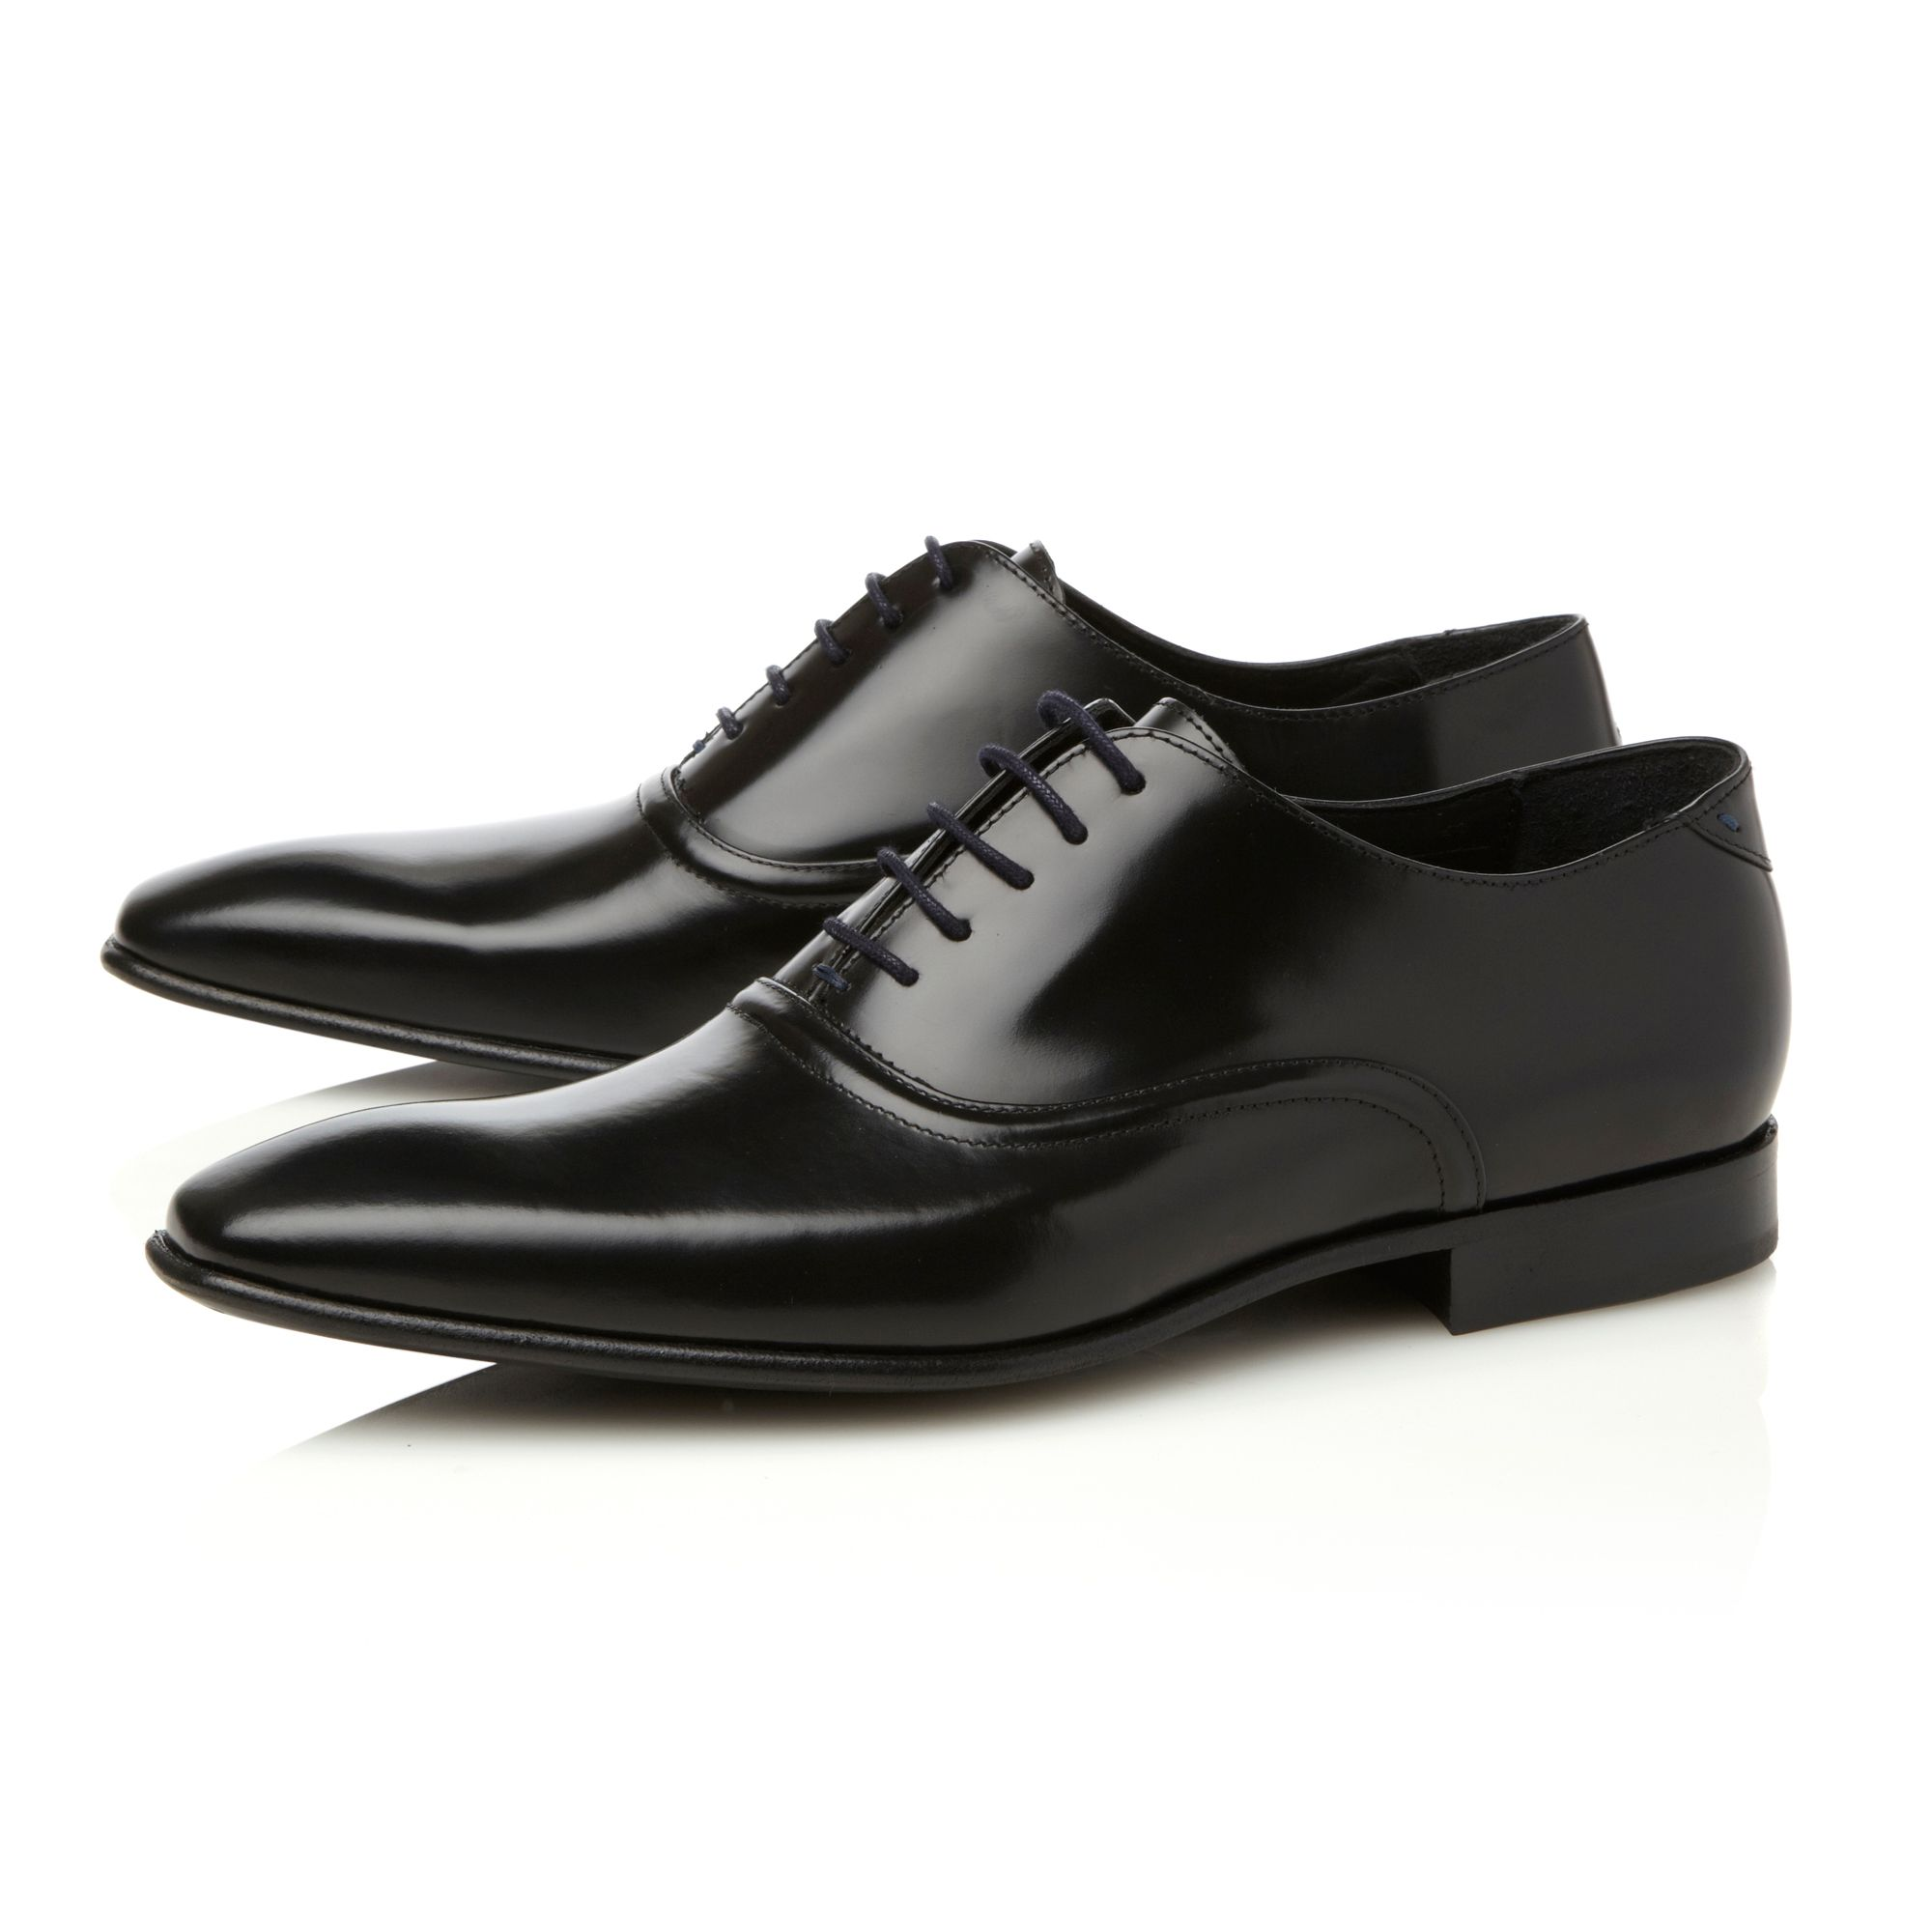 Starling centre seam plain toe shoes